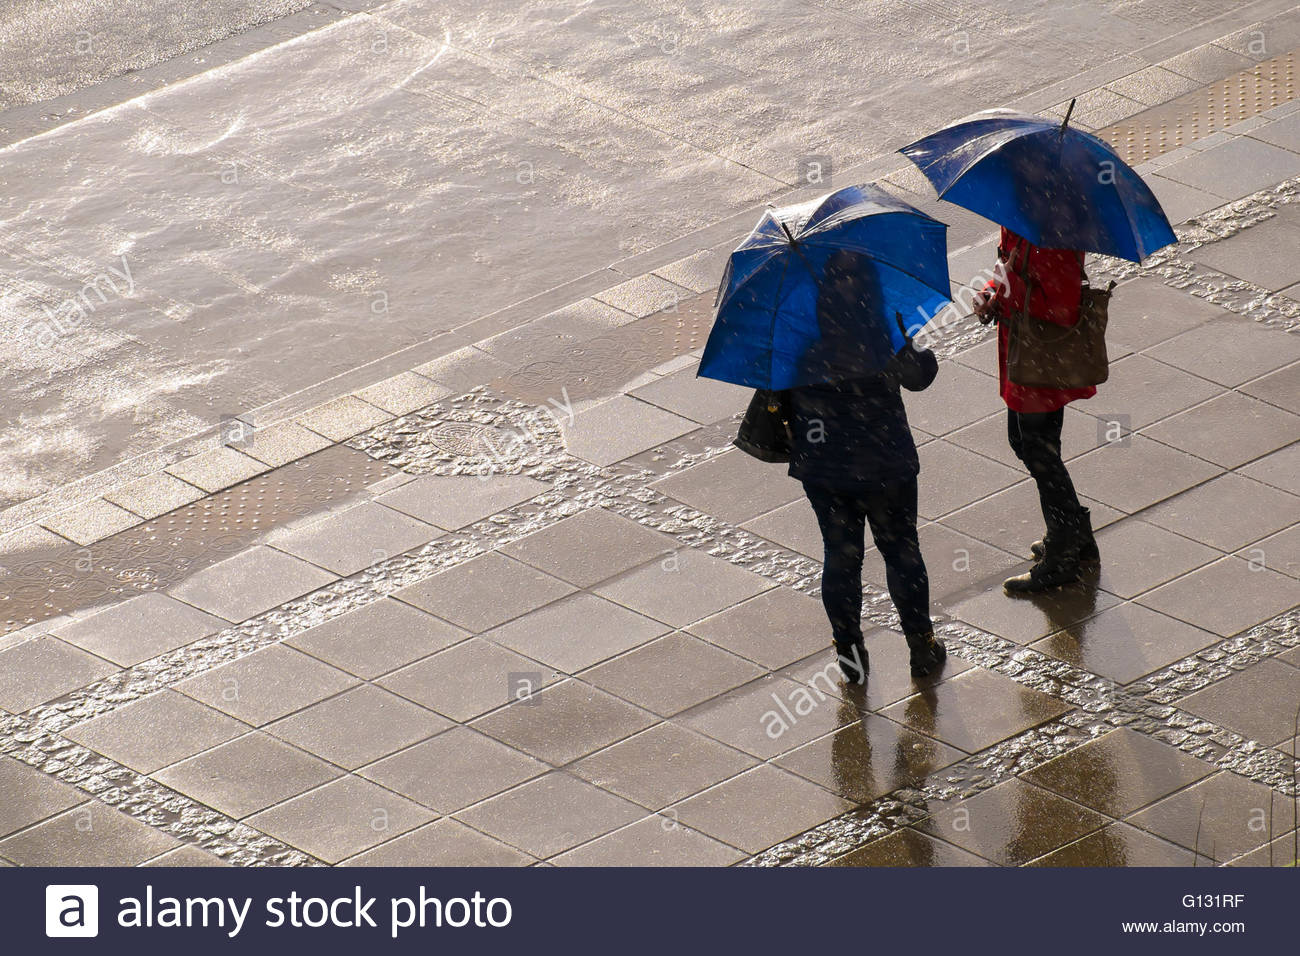 Two women with same blue open umbrellas standing on a stone pavement under rain and sun (seen from above, no faces) - Stock Image